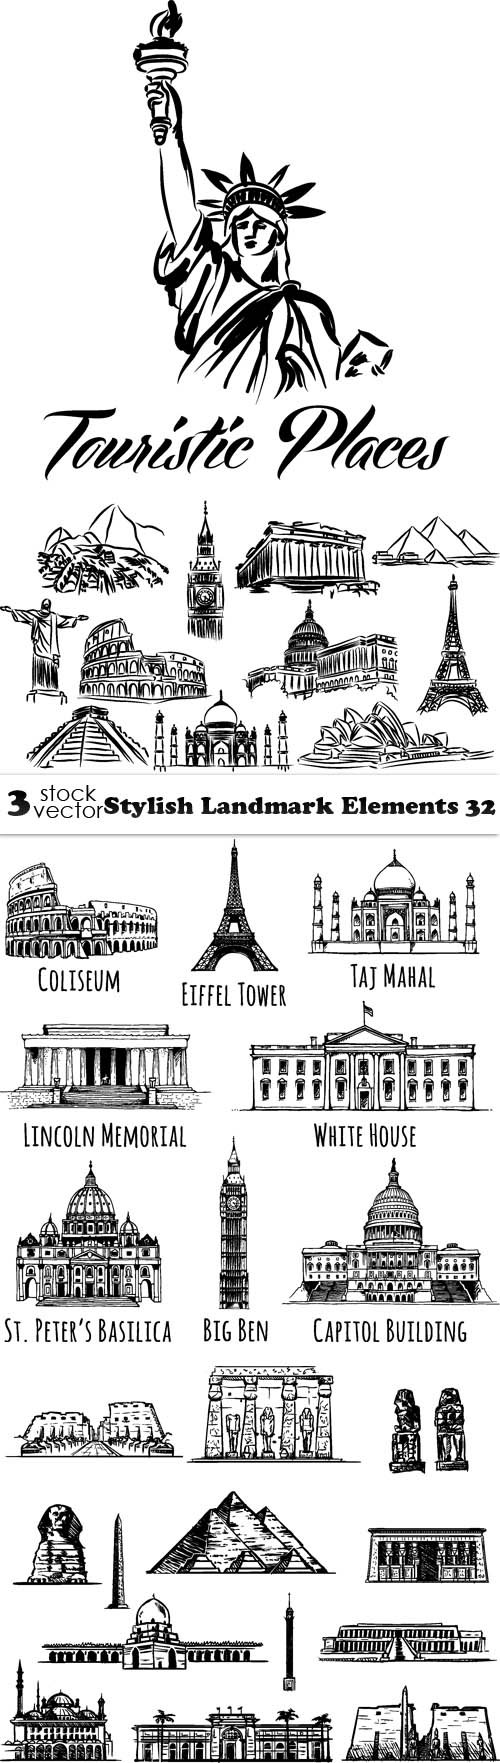 Vectors - Stylish Landmark Elements 32